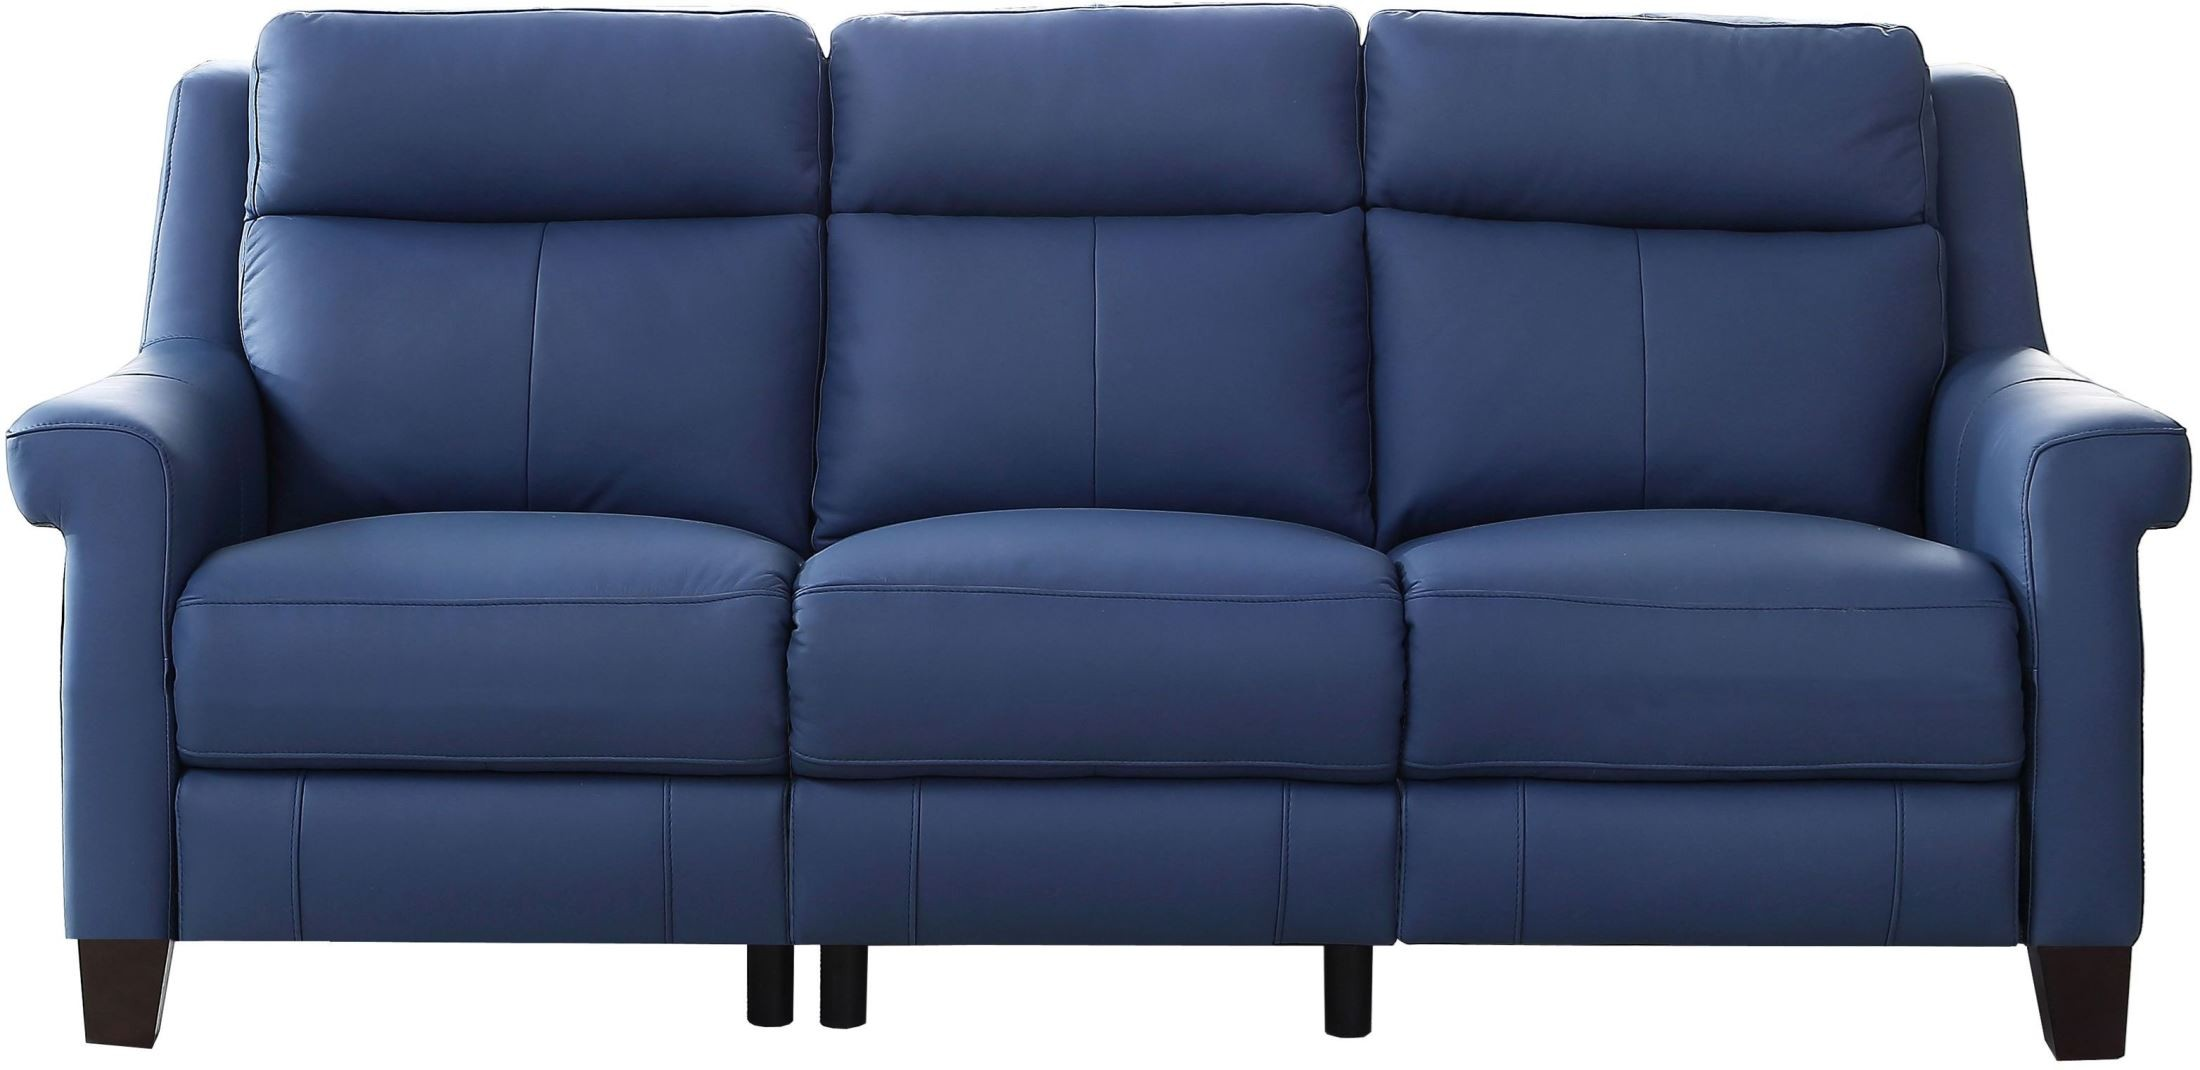 Dolce Blue Power Reclining Sofa With Power Headrest From